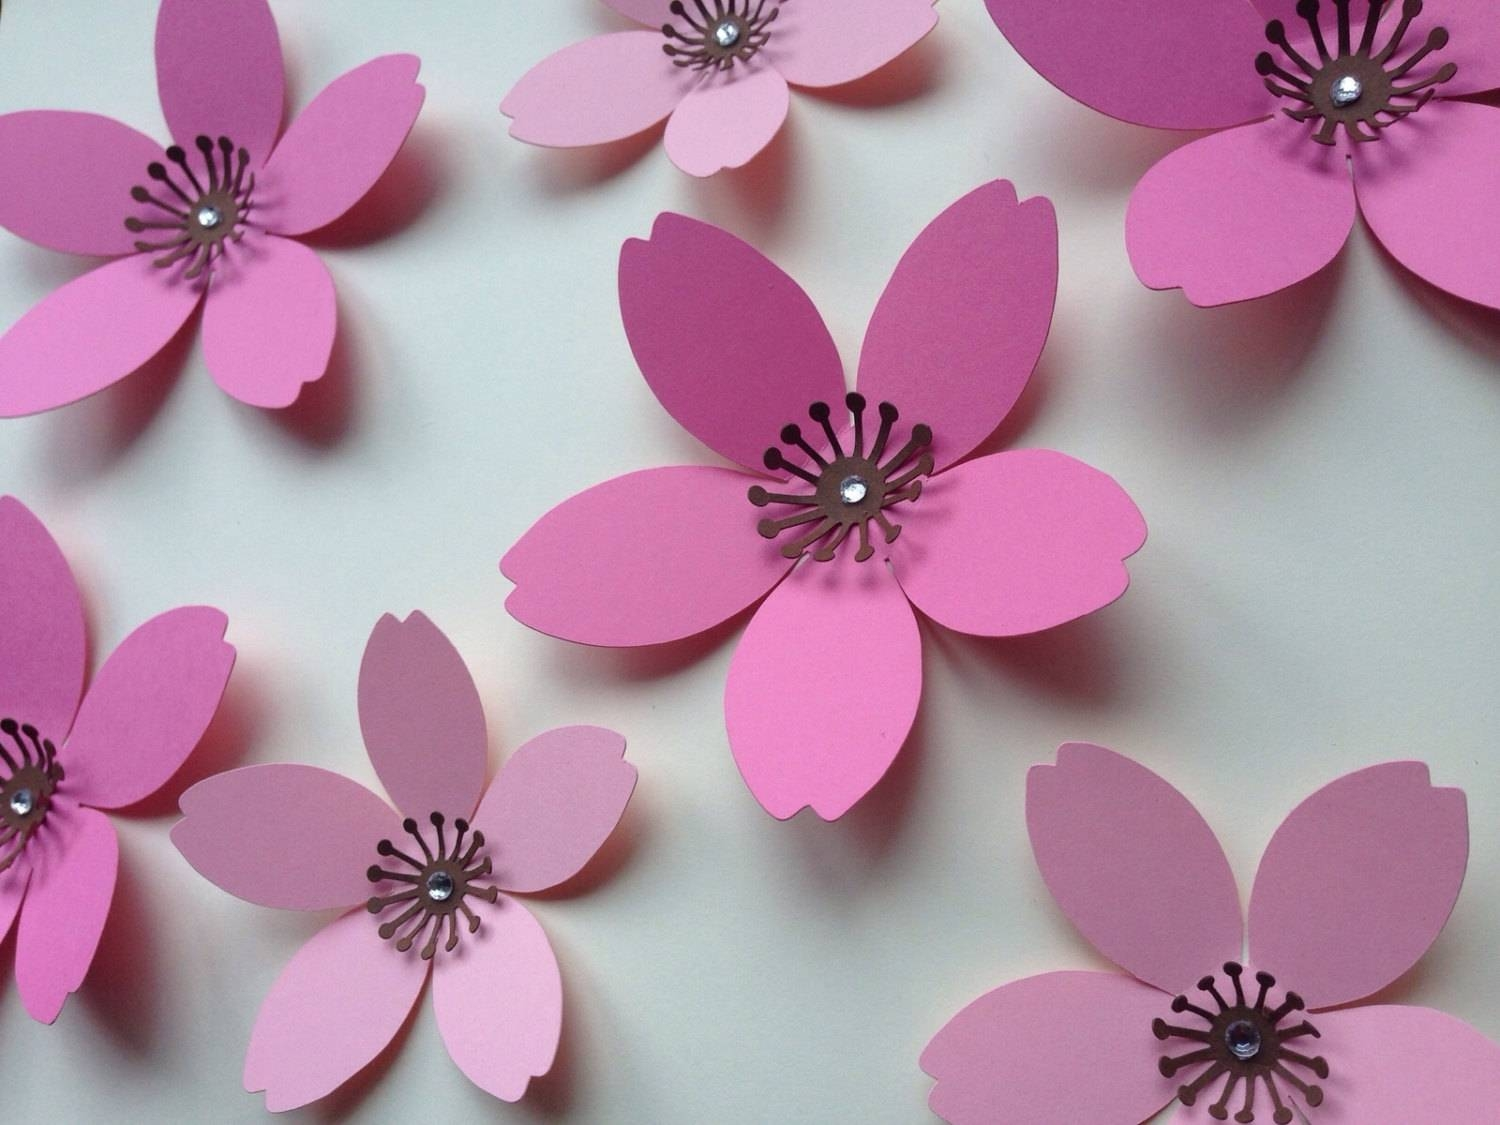 Paper Wall 3D Flower 3D Wall Art Paper Flower Wall Paper Throughout Best And Newest Flowers 3D Wall Art (View 19 of 20)